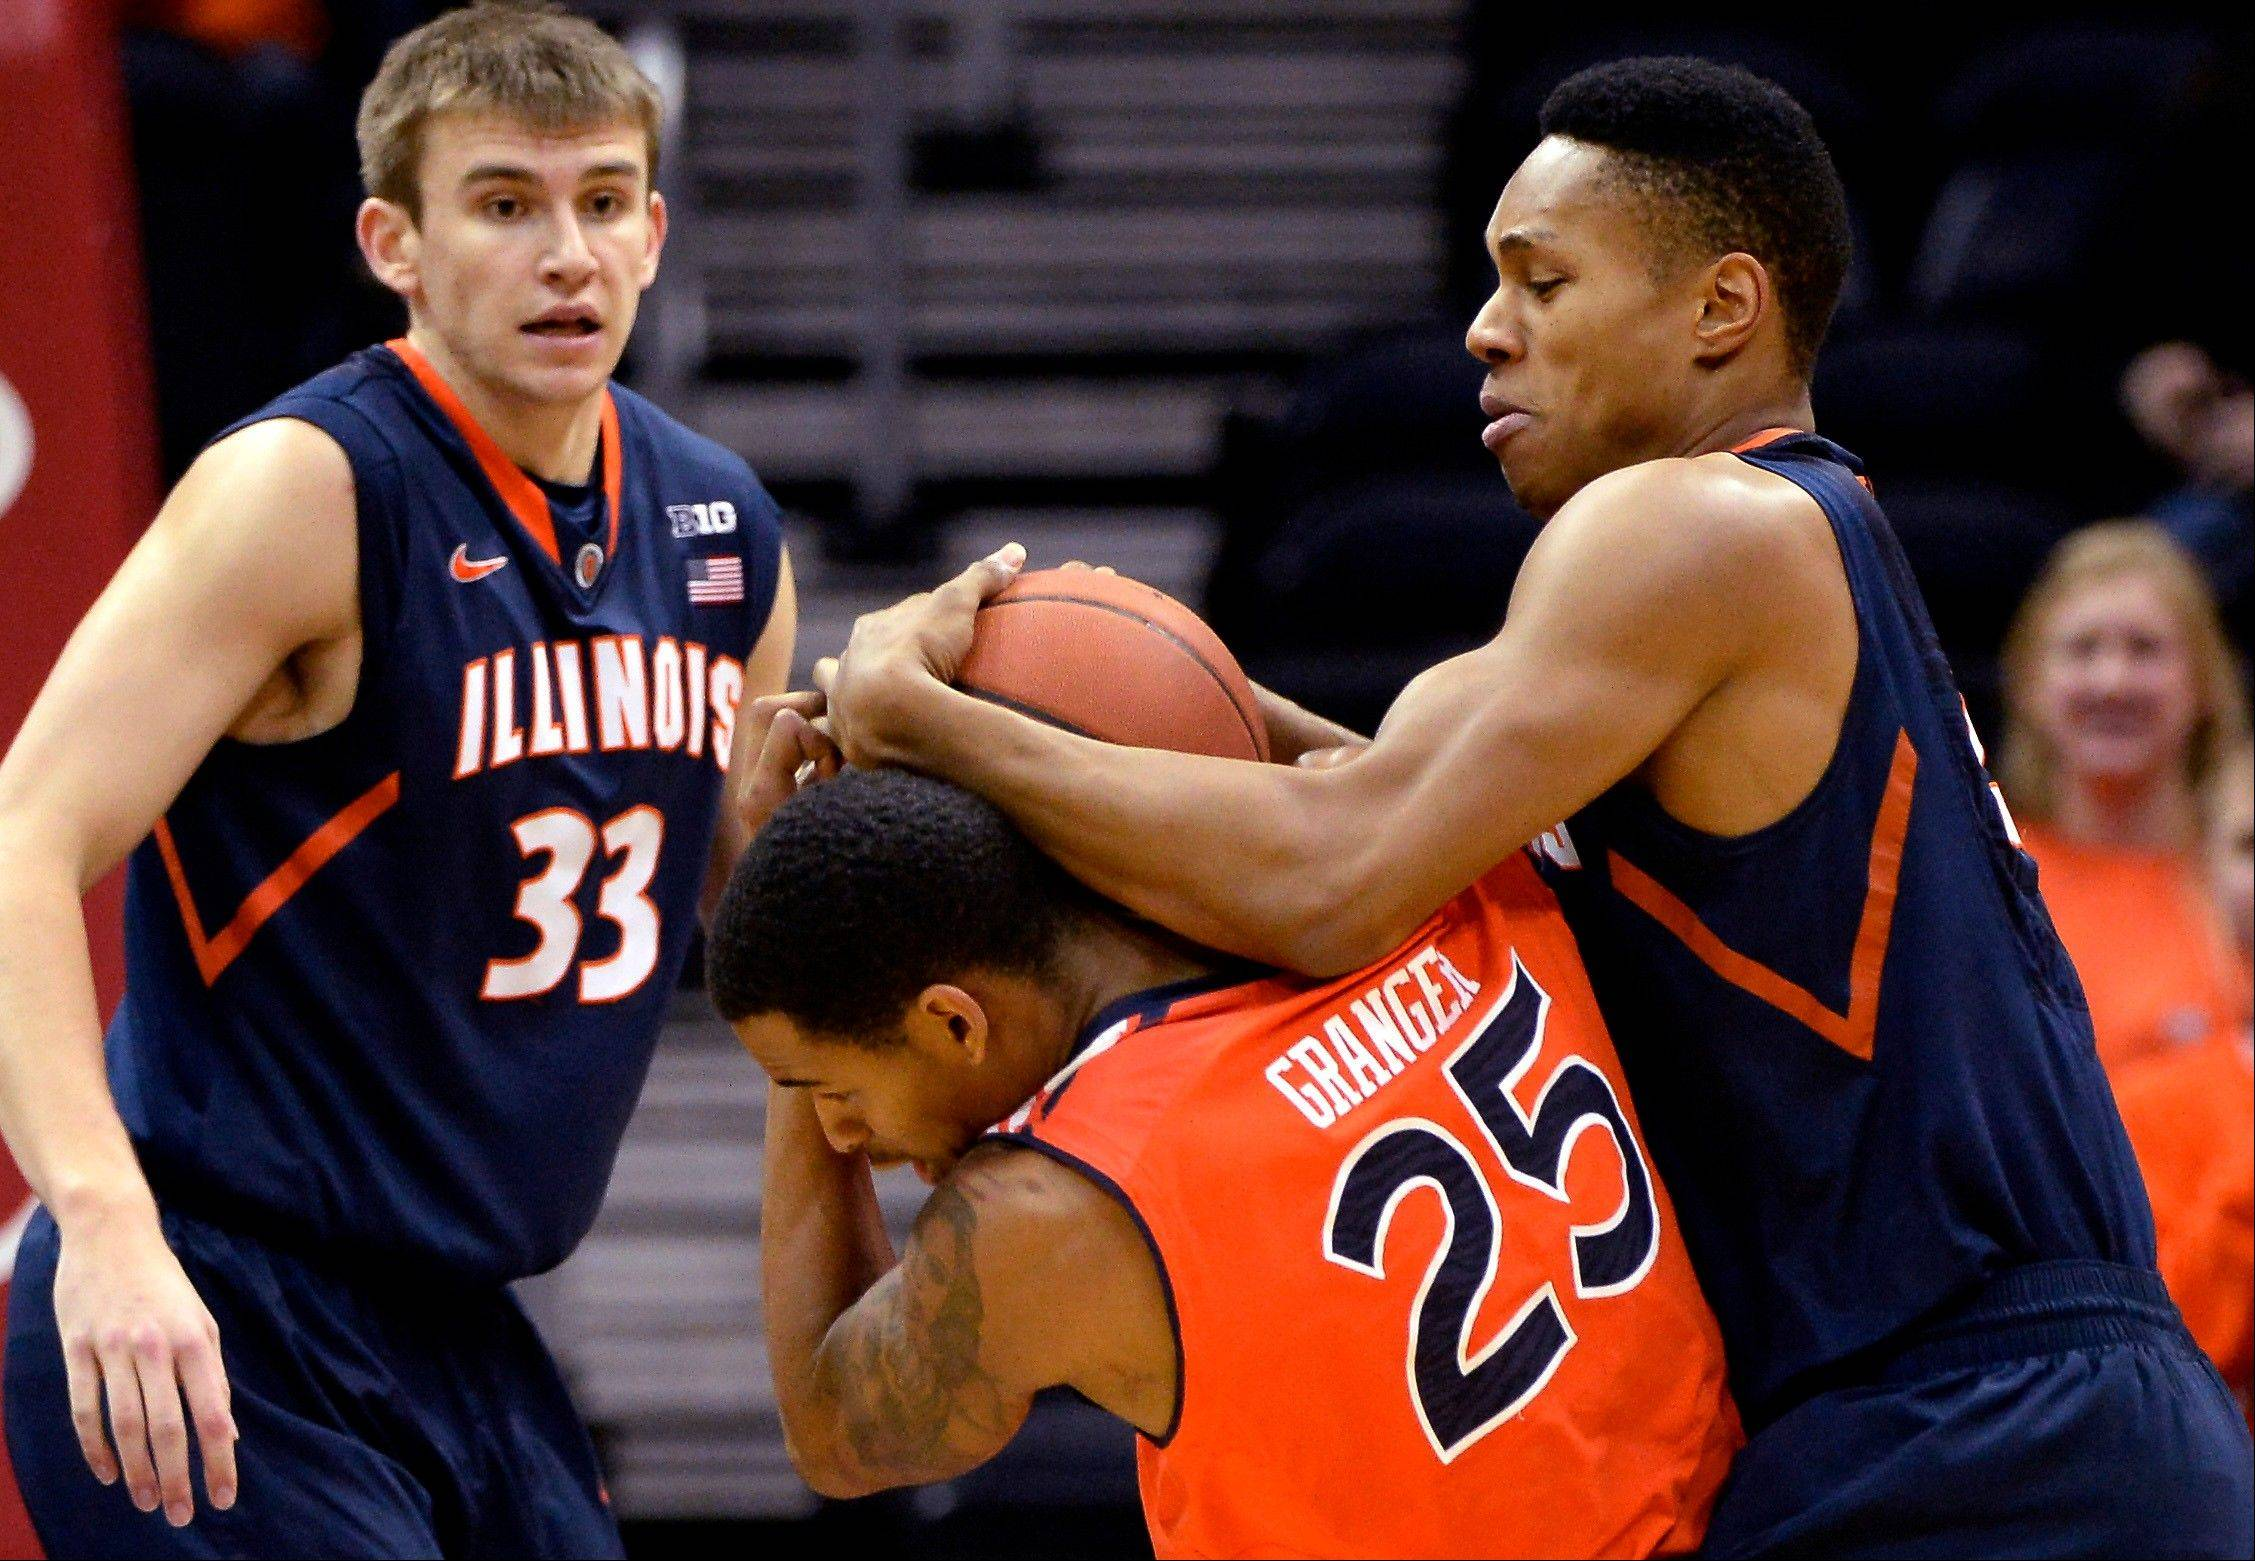 Auburn�s Jordan Granger (25) and Illinois� Joseph Bertrand (2) battle for the rebound as Illinois� Jon Ekey (33) looks on in the first half of an NCAA college basketball game on Sunday, Dec. 8, 2013, in Atlanta.